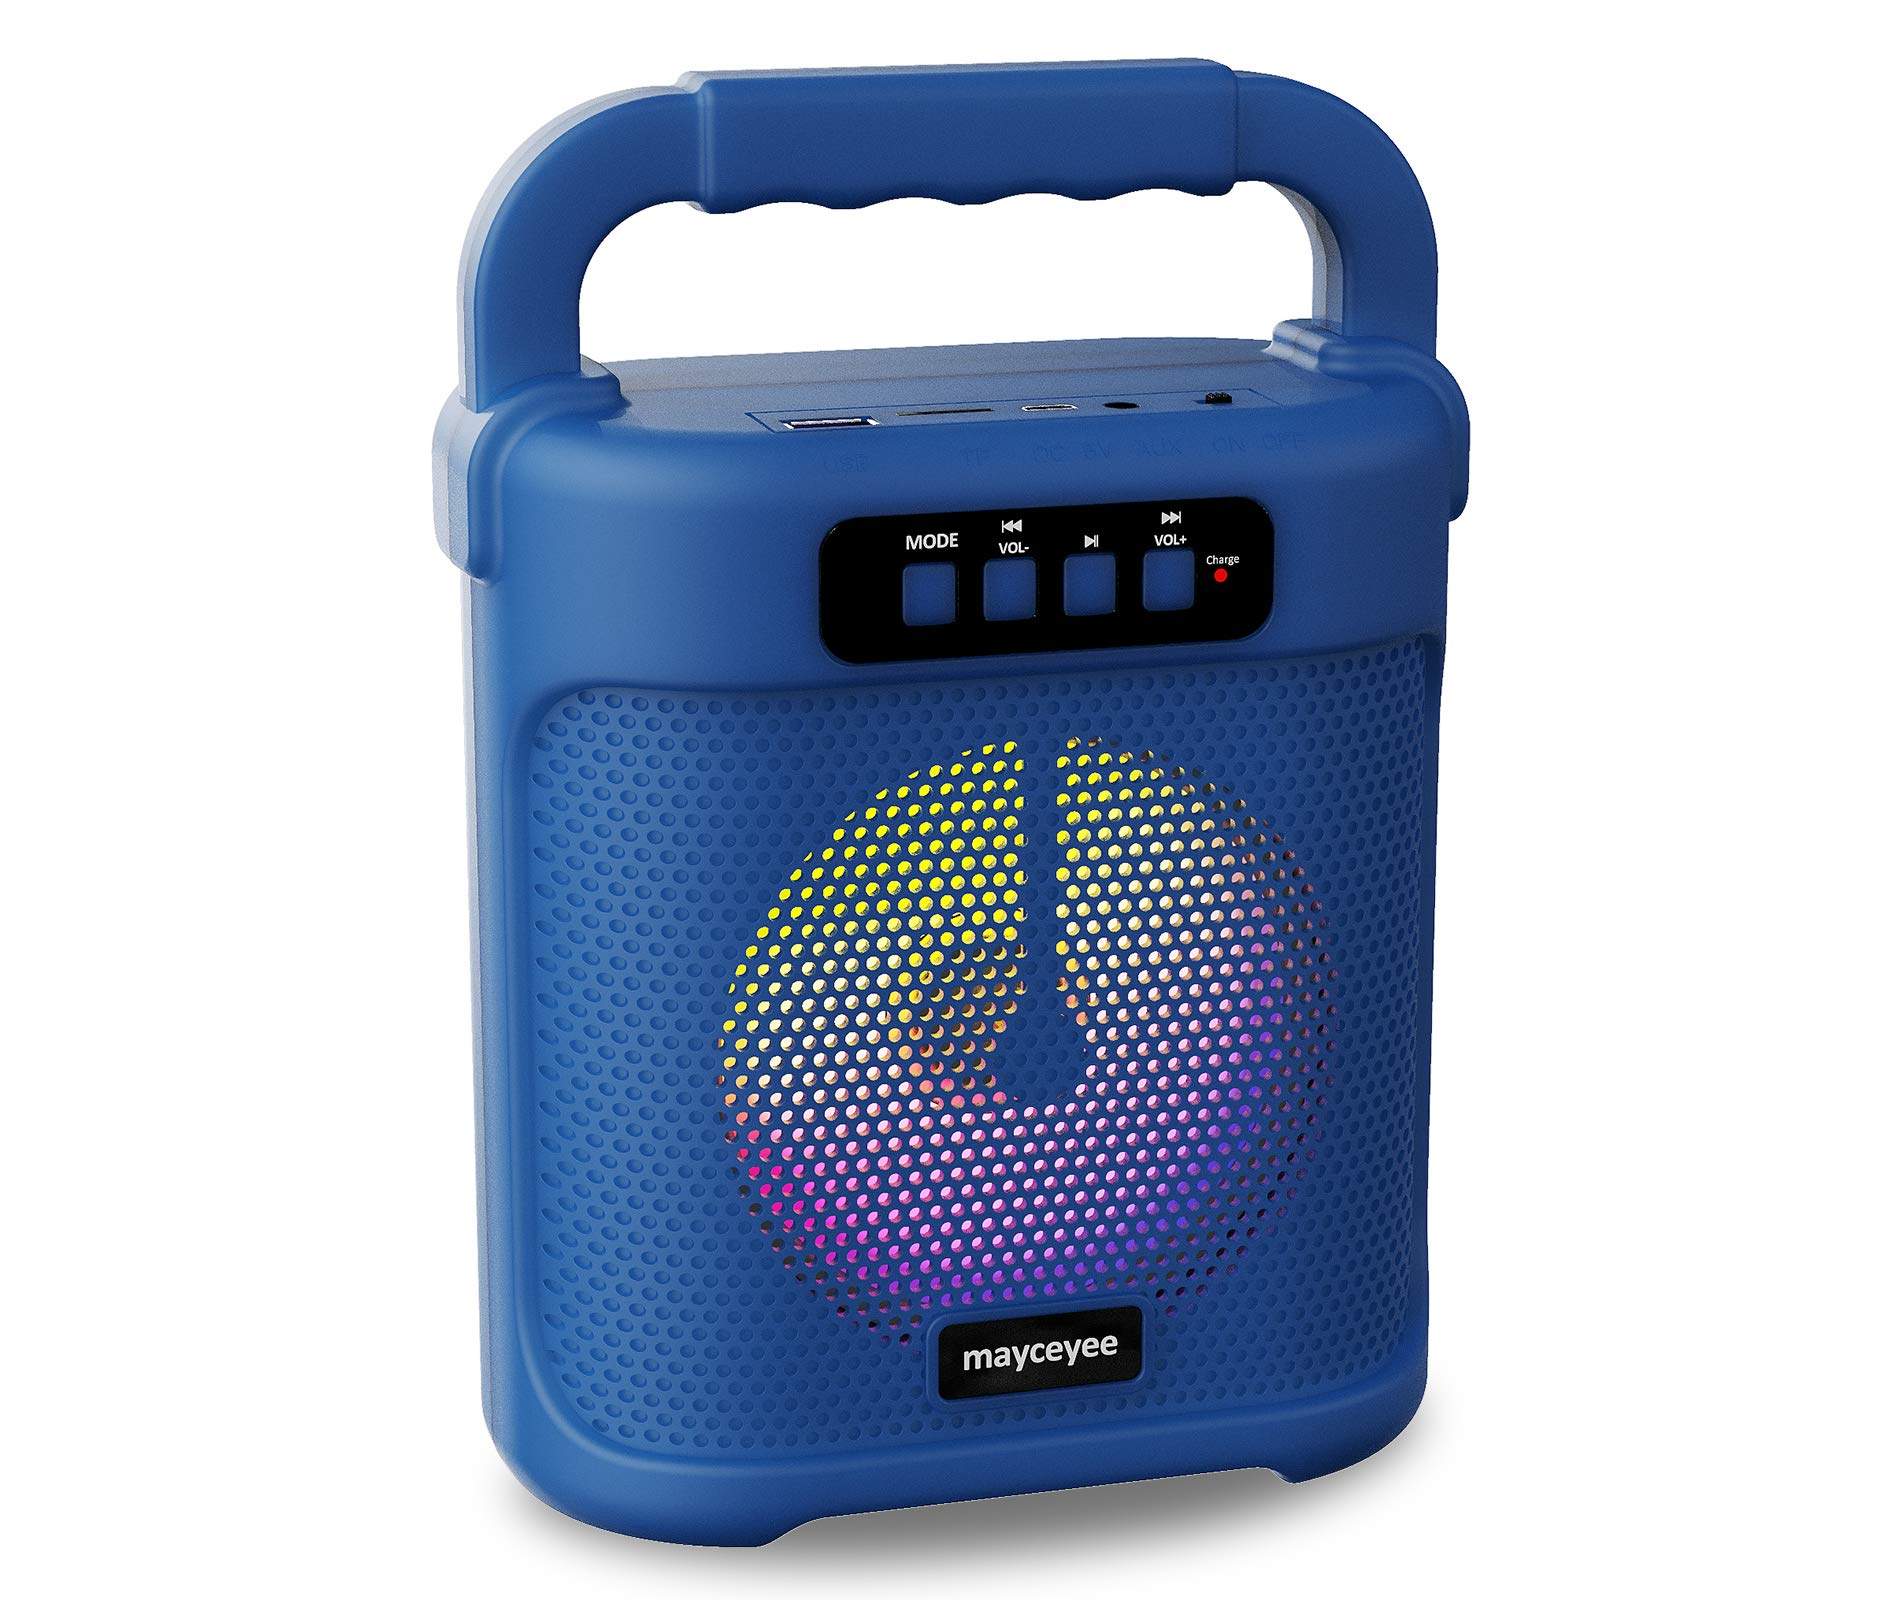 mayceyee Portable Bluetooth Speaker with FM Radio Rechargeable Wireless Speaker with Line